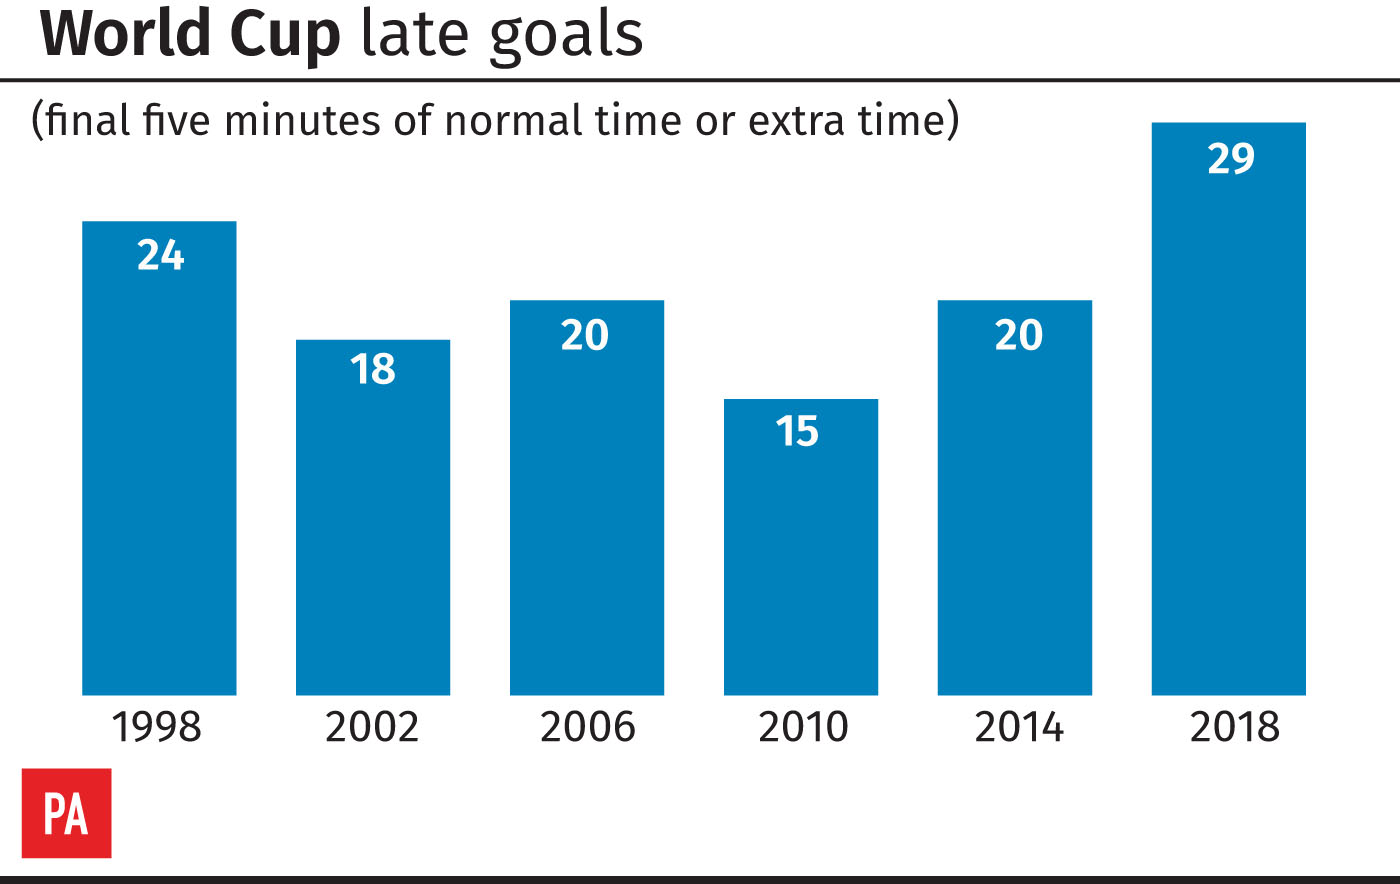 Late goals at each World Cup since 1998